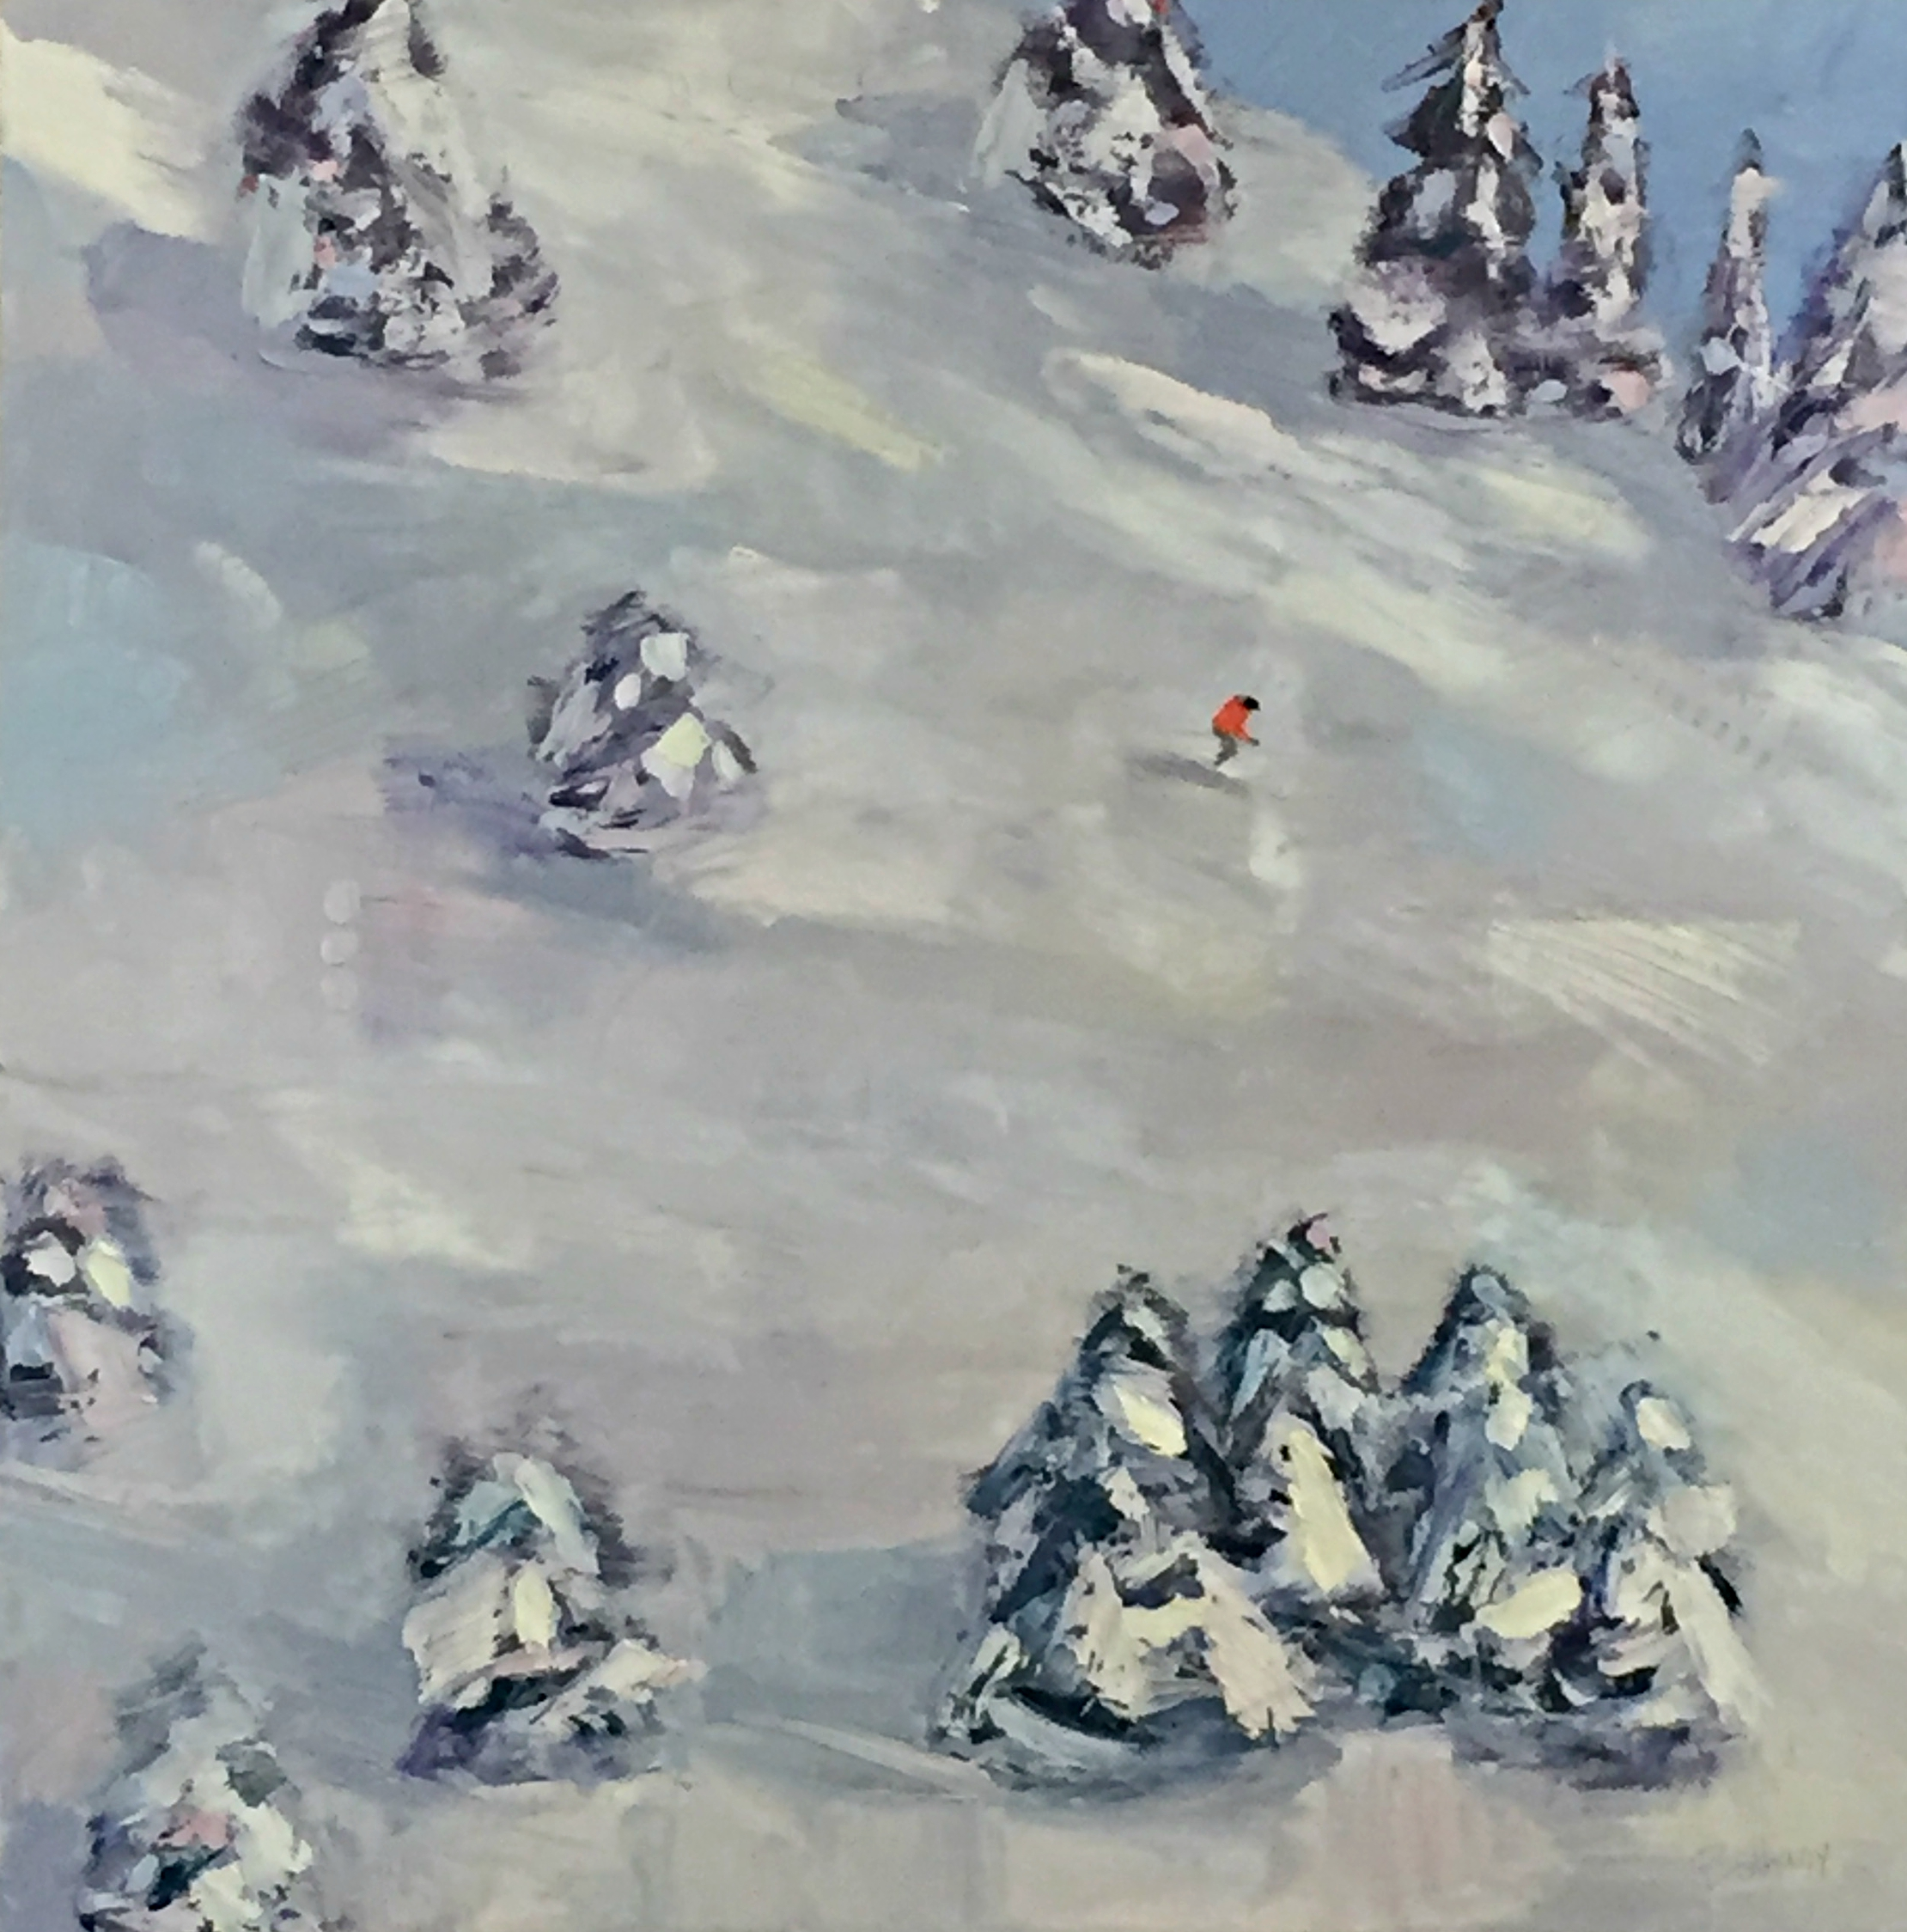 Powder Day, ski painting by Bethany Harper Williams | Effusion Art Gallery + Cast Glass Studio, Invermere BC